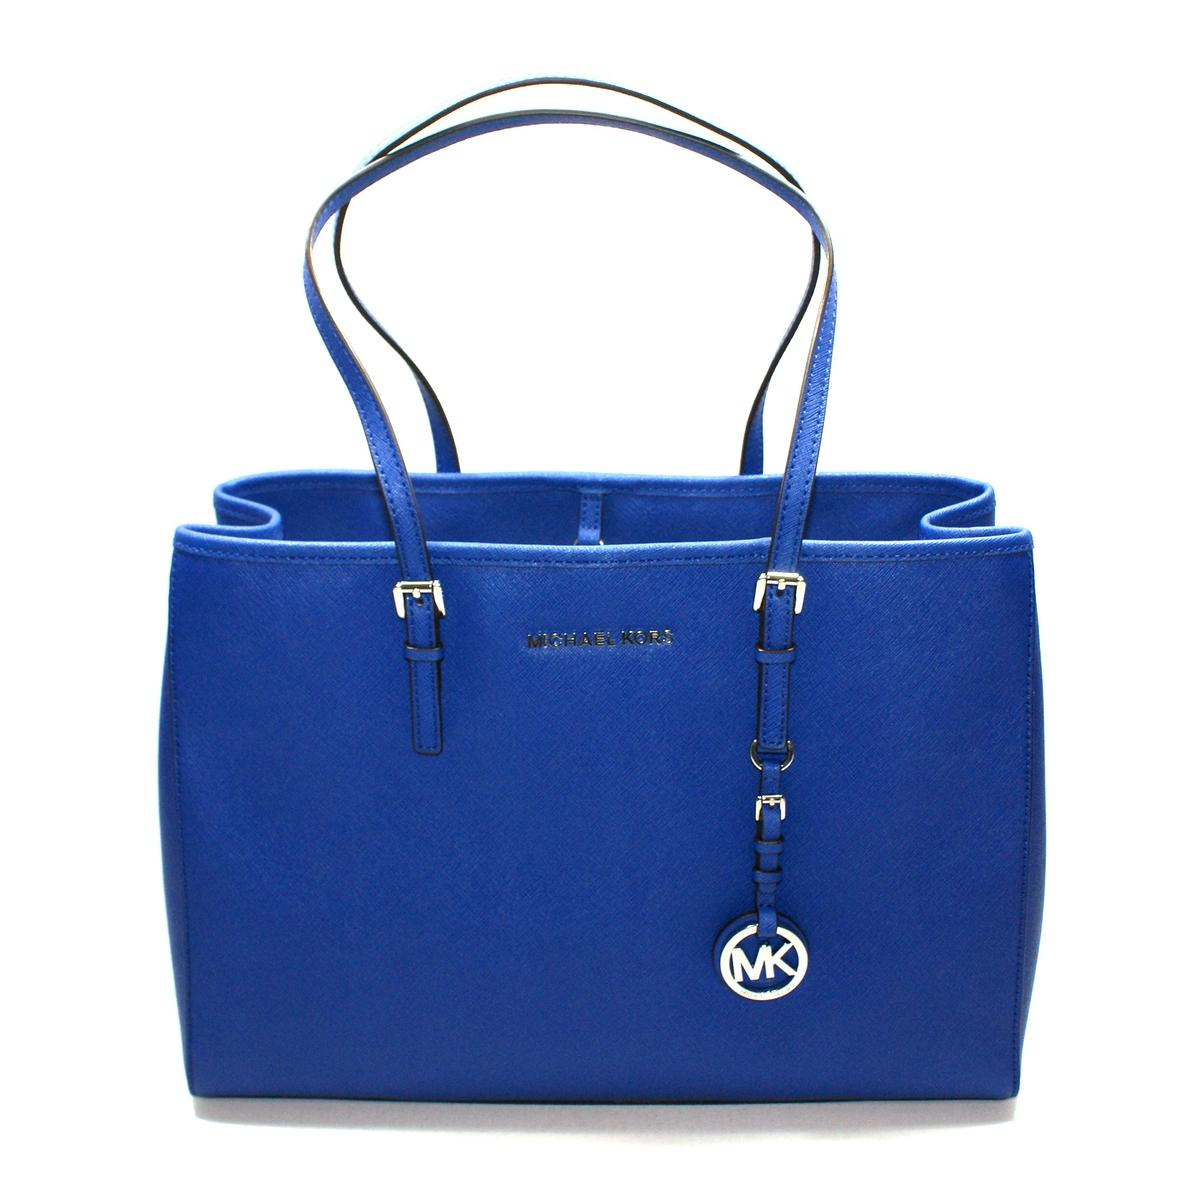 66c2c2a7a1c3e4 Home · Michael Kors · Saffiano Jet Set Travel East West Tote Sapphire.  CLICK THUMBNAIL TO ZOOM. Found ...